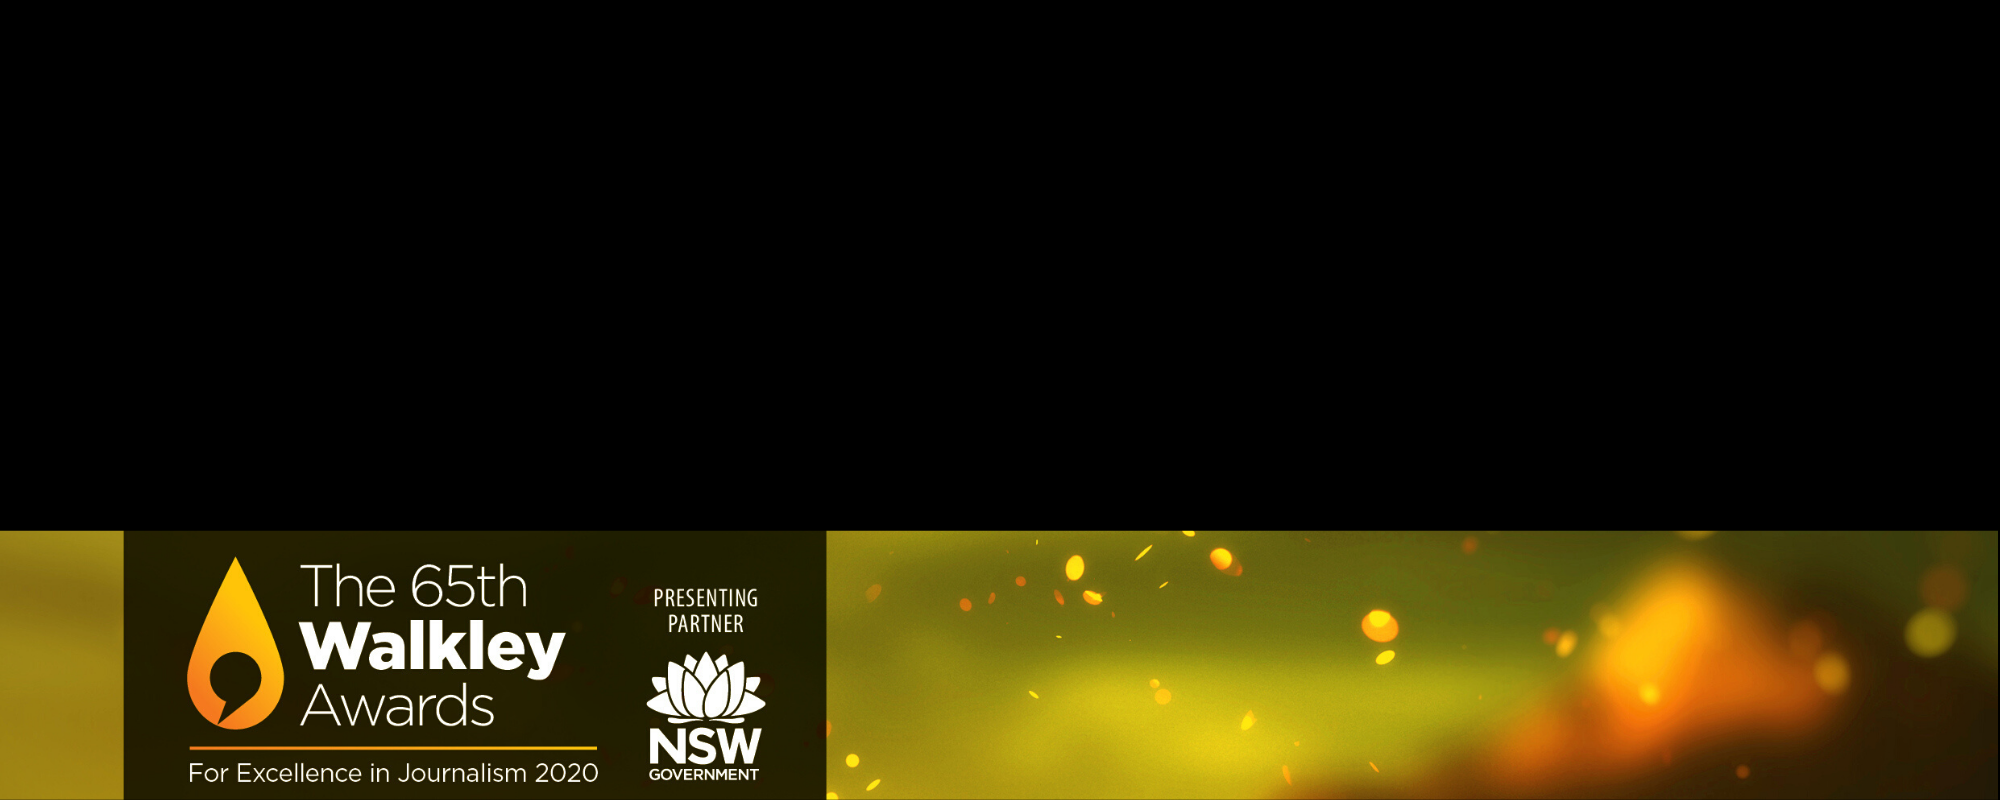 Walkley Judging Board Chair Lenore Taylor launches the 65th Walkley Awards for Excellence in Journalism